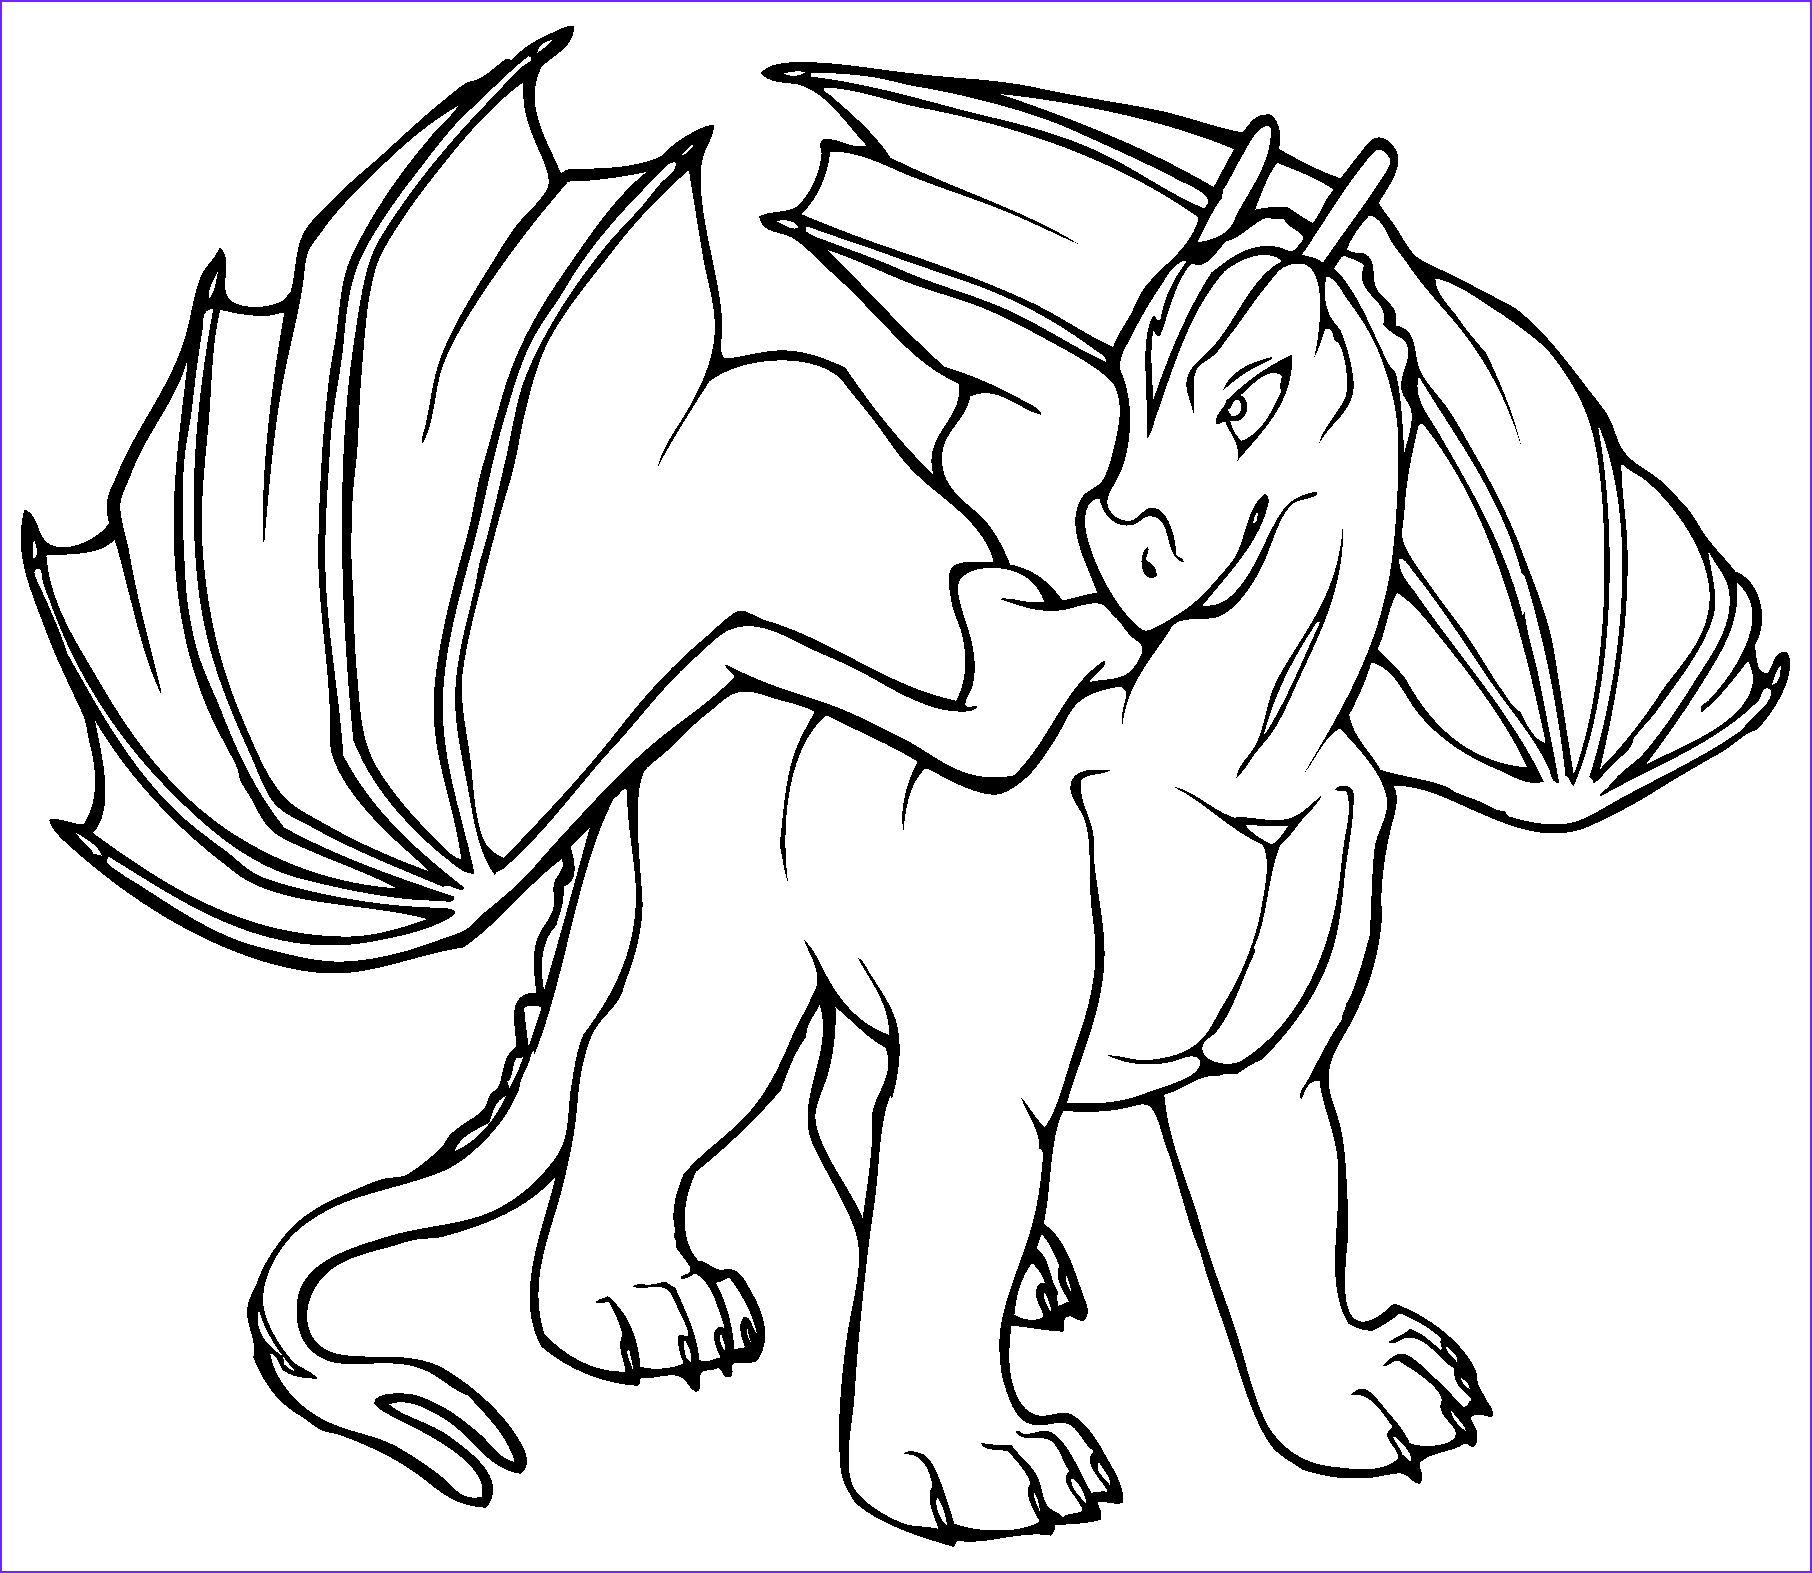 Free Dragon Coloring Pages Cool Photos Free Printable Dragon Coloring Pages for Kids